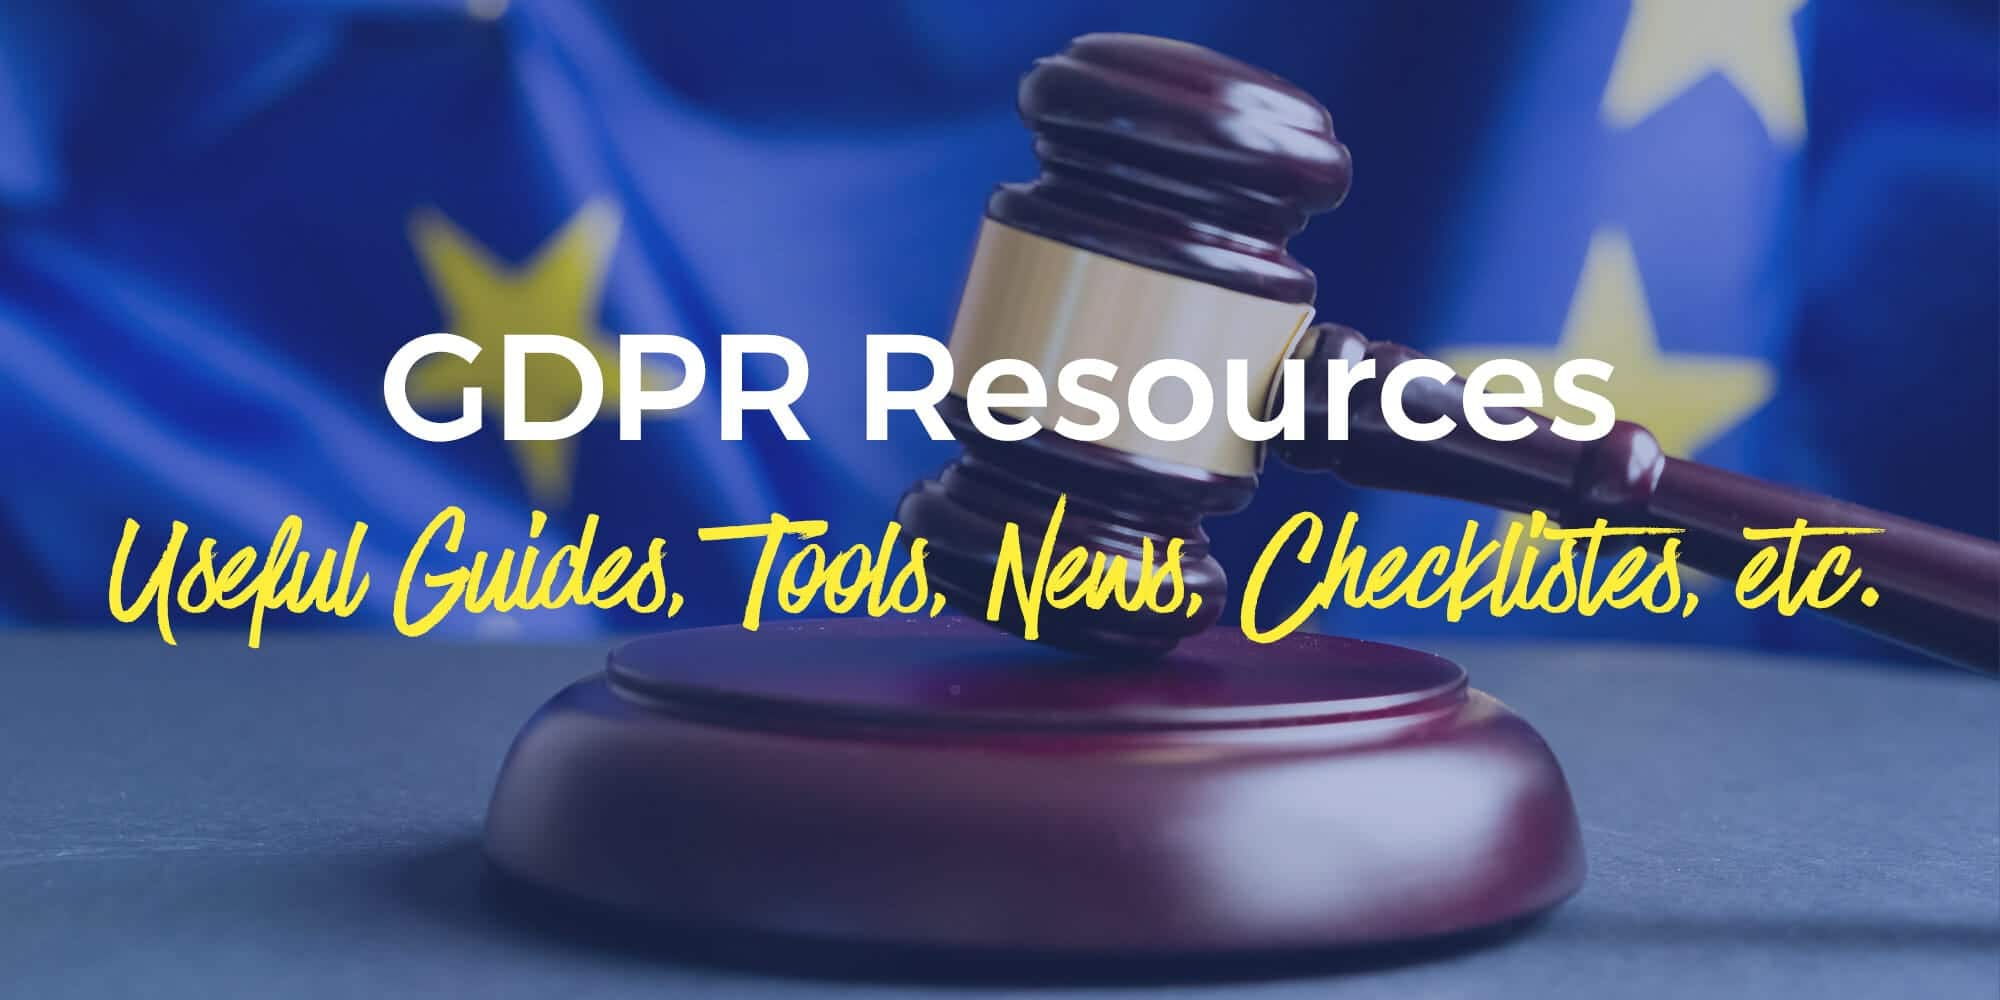 GDPR resources